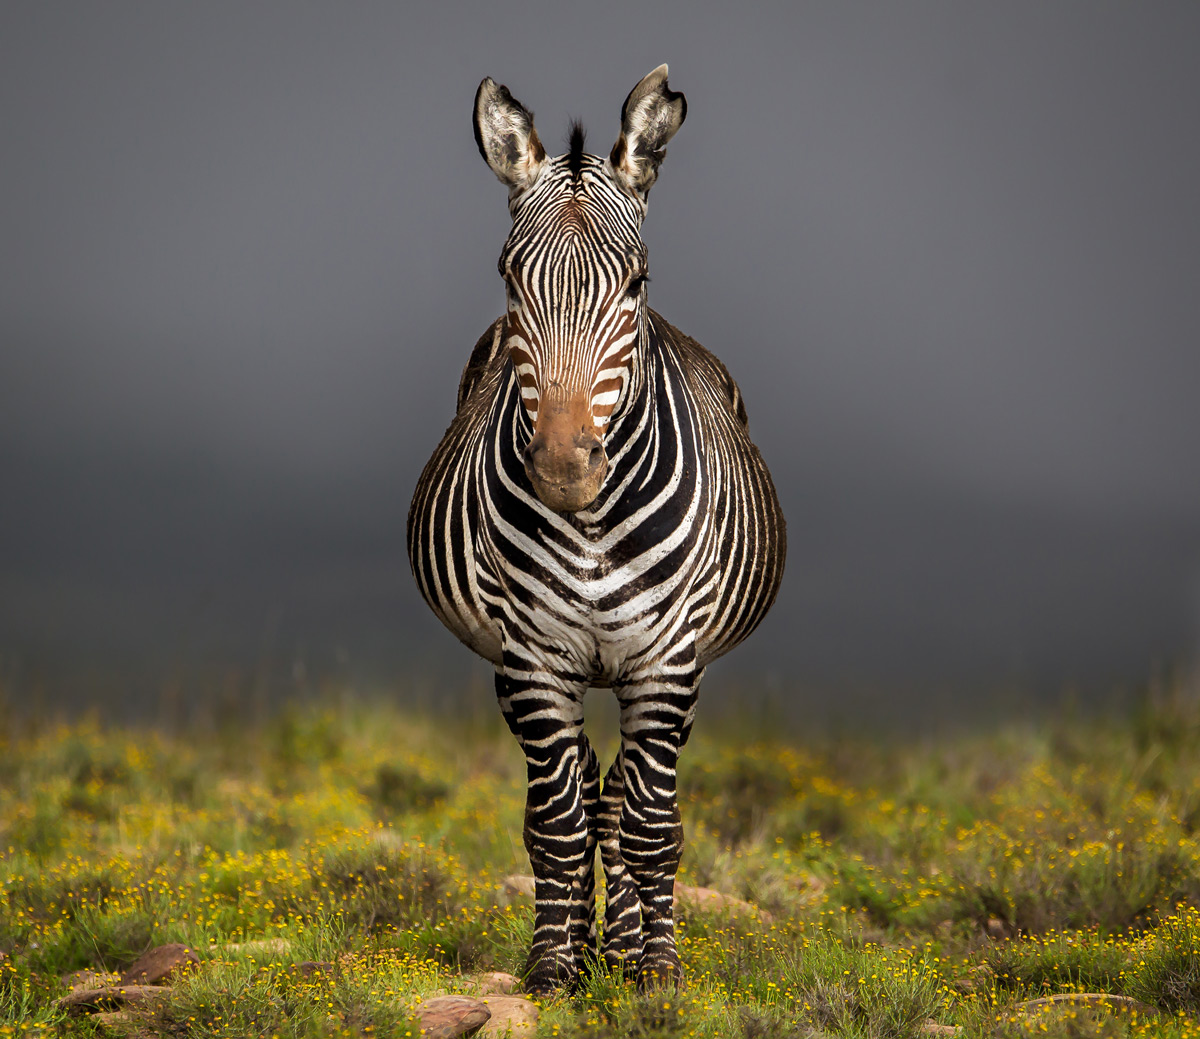 """Just a plain image of a mountain zebra which is part of a sustainable and large population in the Mountain Zebra National Park. The reason I took the image was to capture and celebrate how they (as a species) were brought from the brink of extinction to a thriving population today."" – Mountain Zebra National Park, South Africa © John Vosloo"